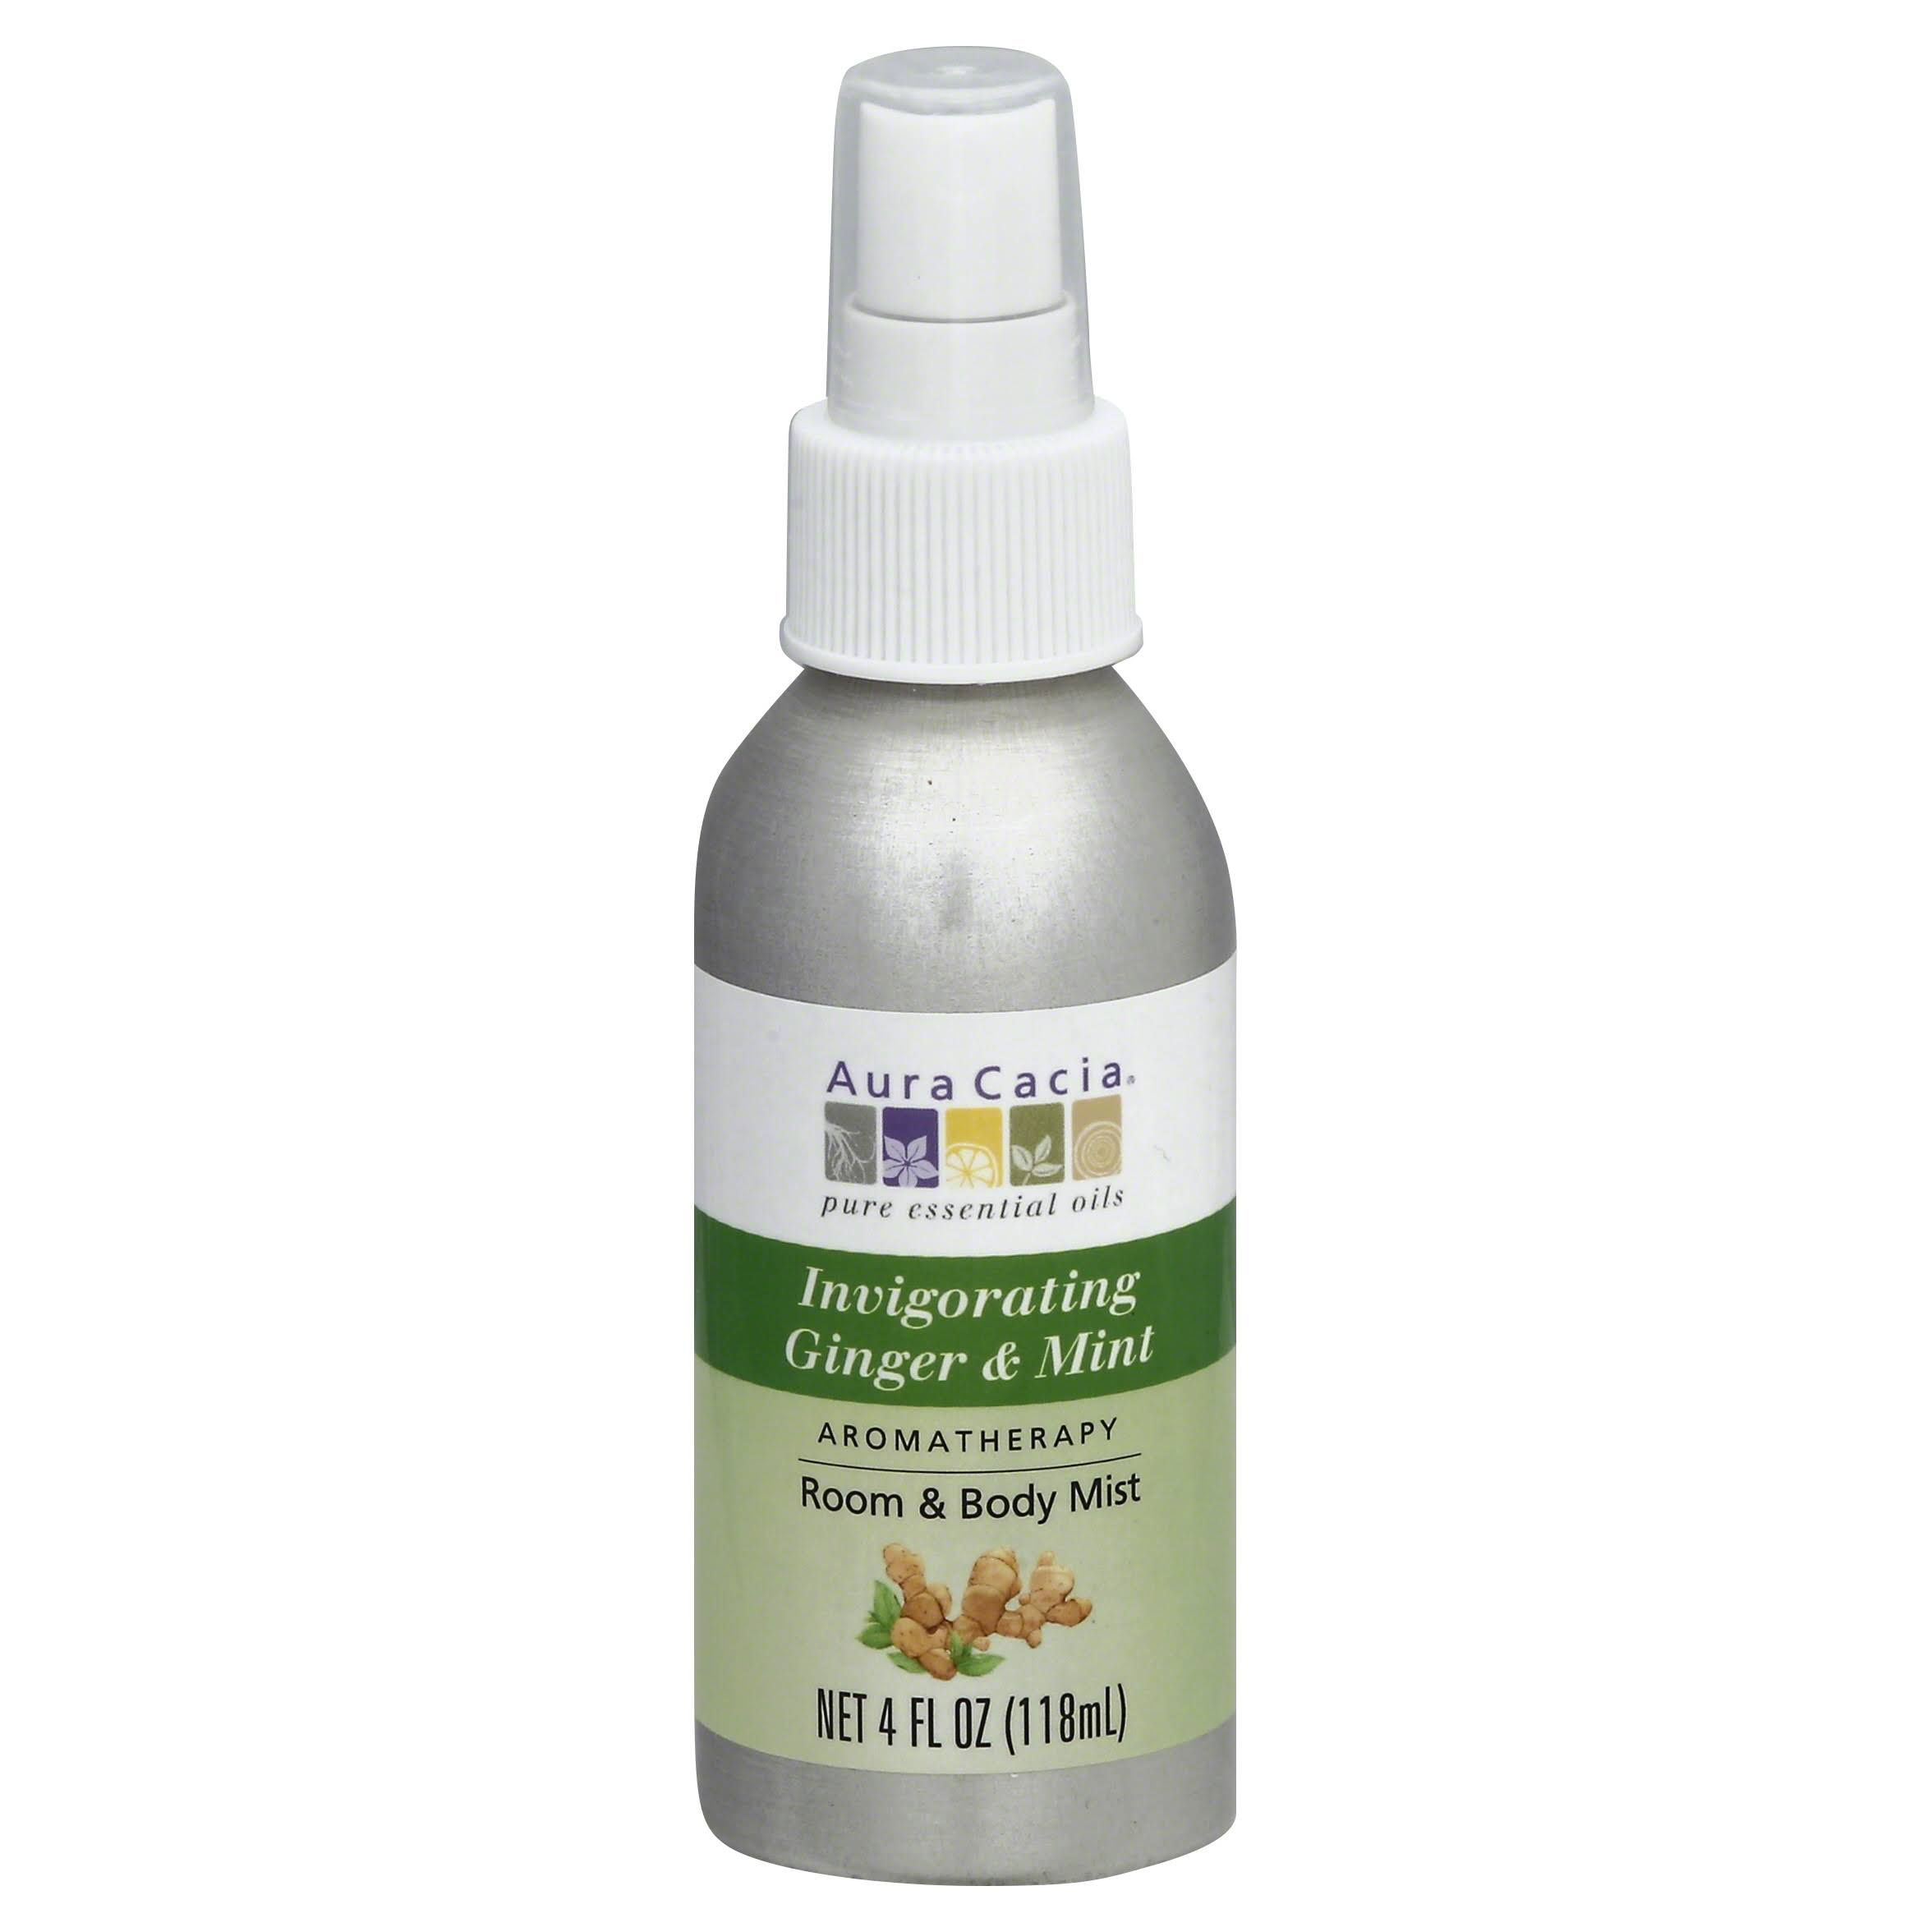 Aura Cacia Aromatherapy Body Mist - Ginger and Mint, 4oz